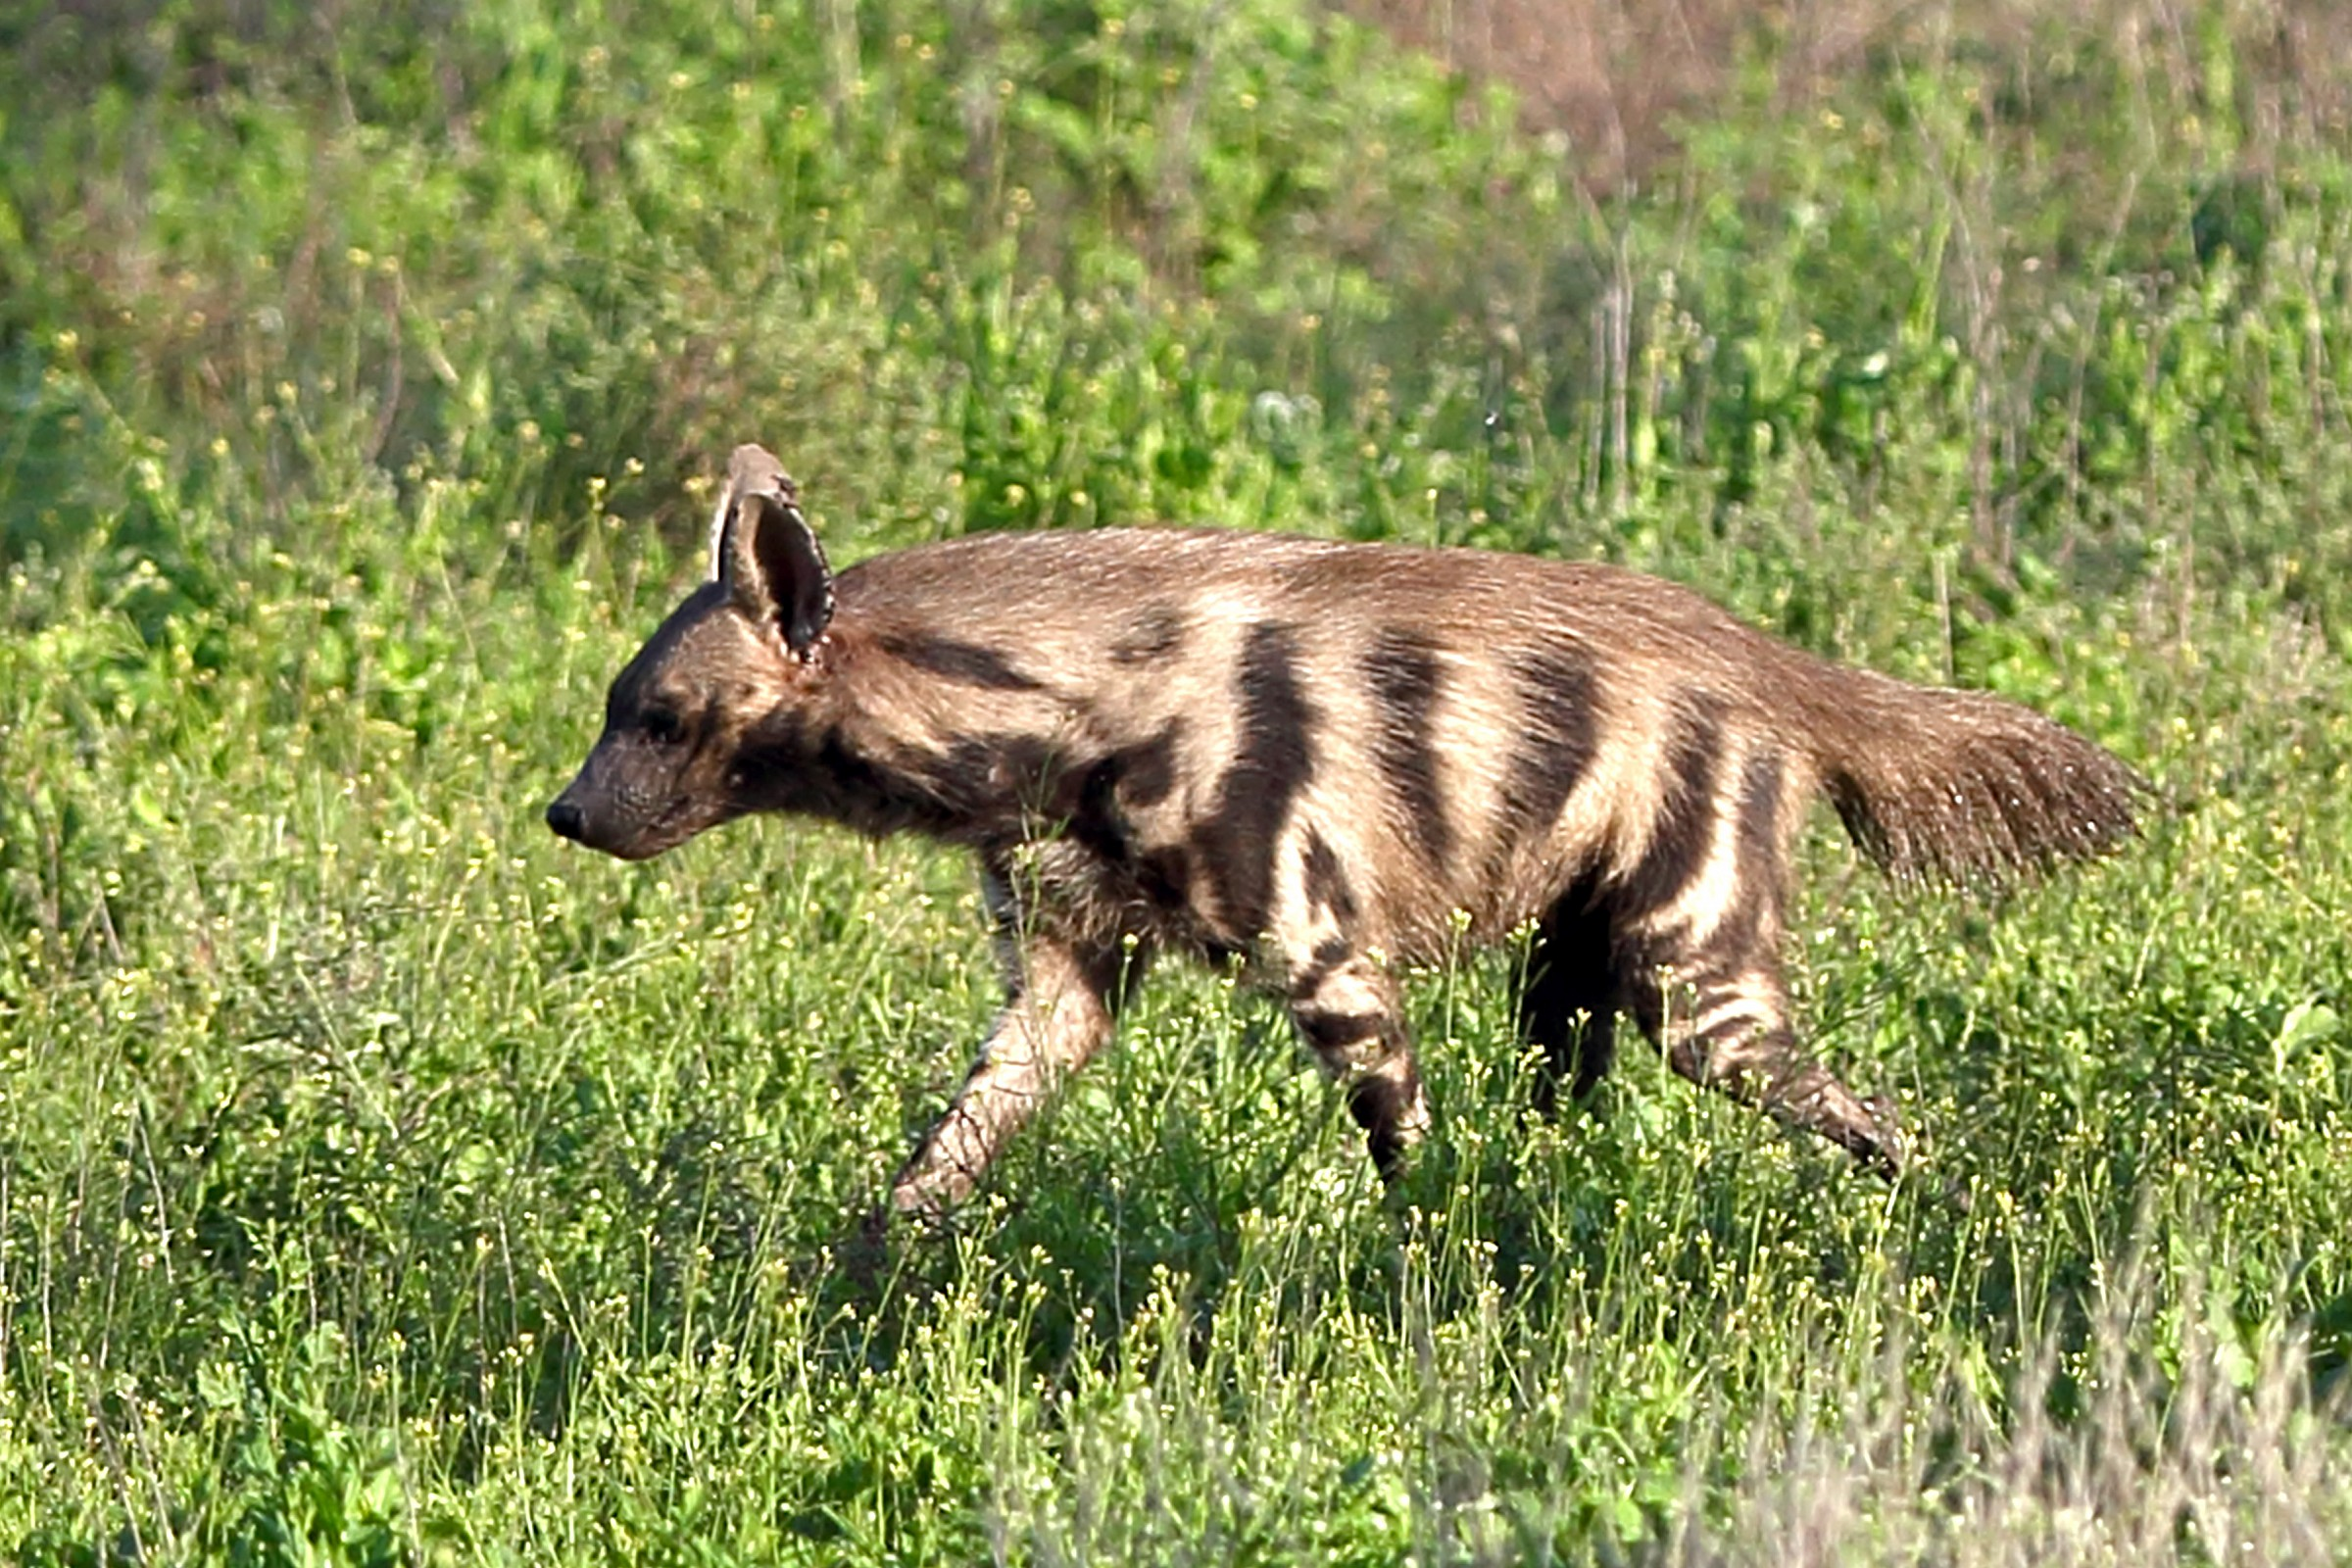 Would striped hyena be a forager